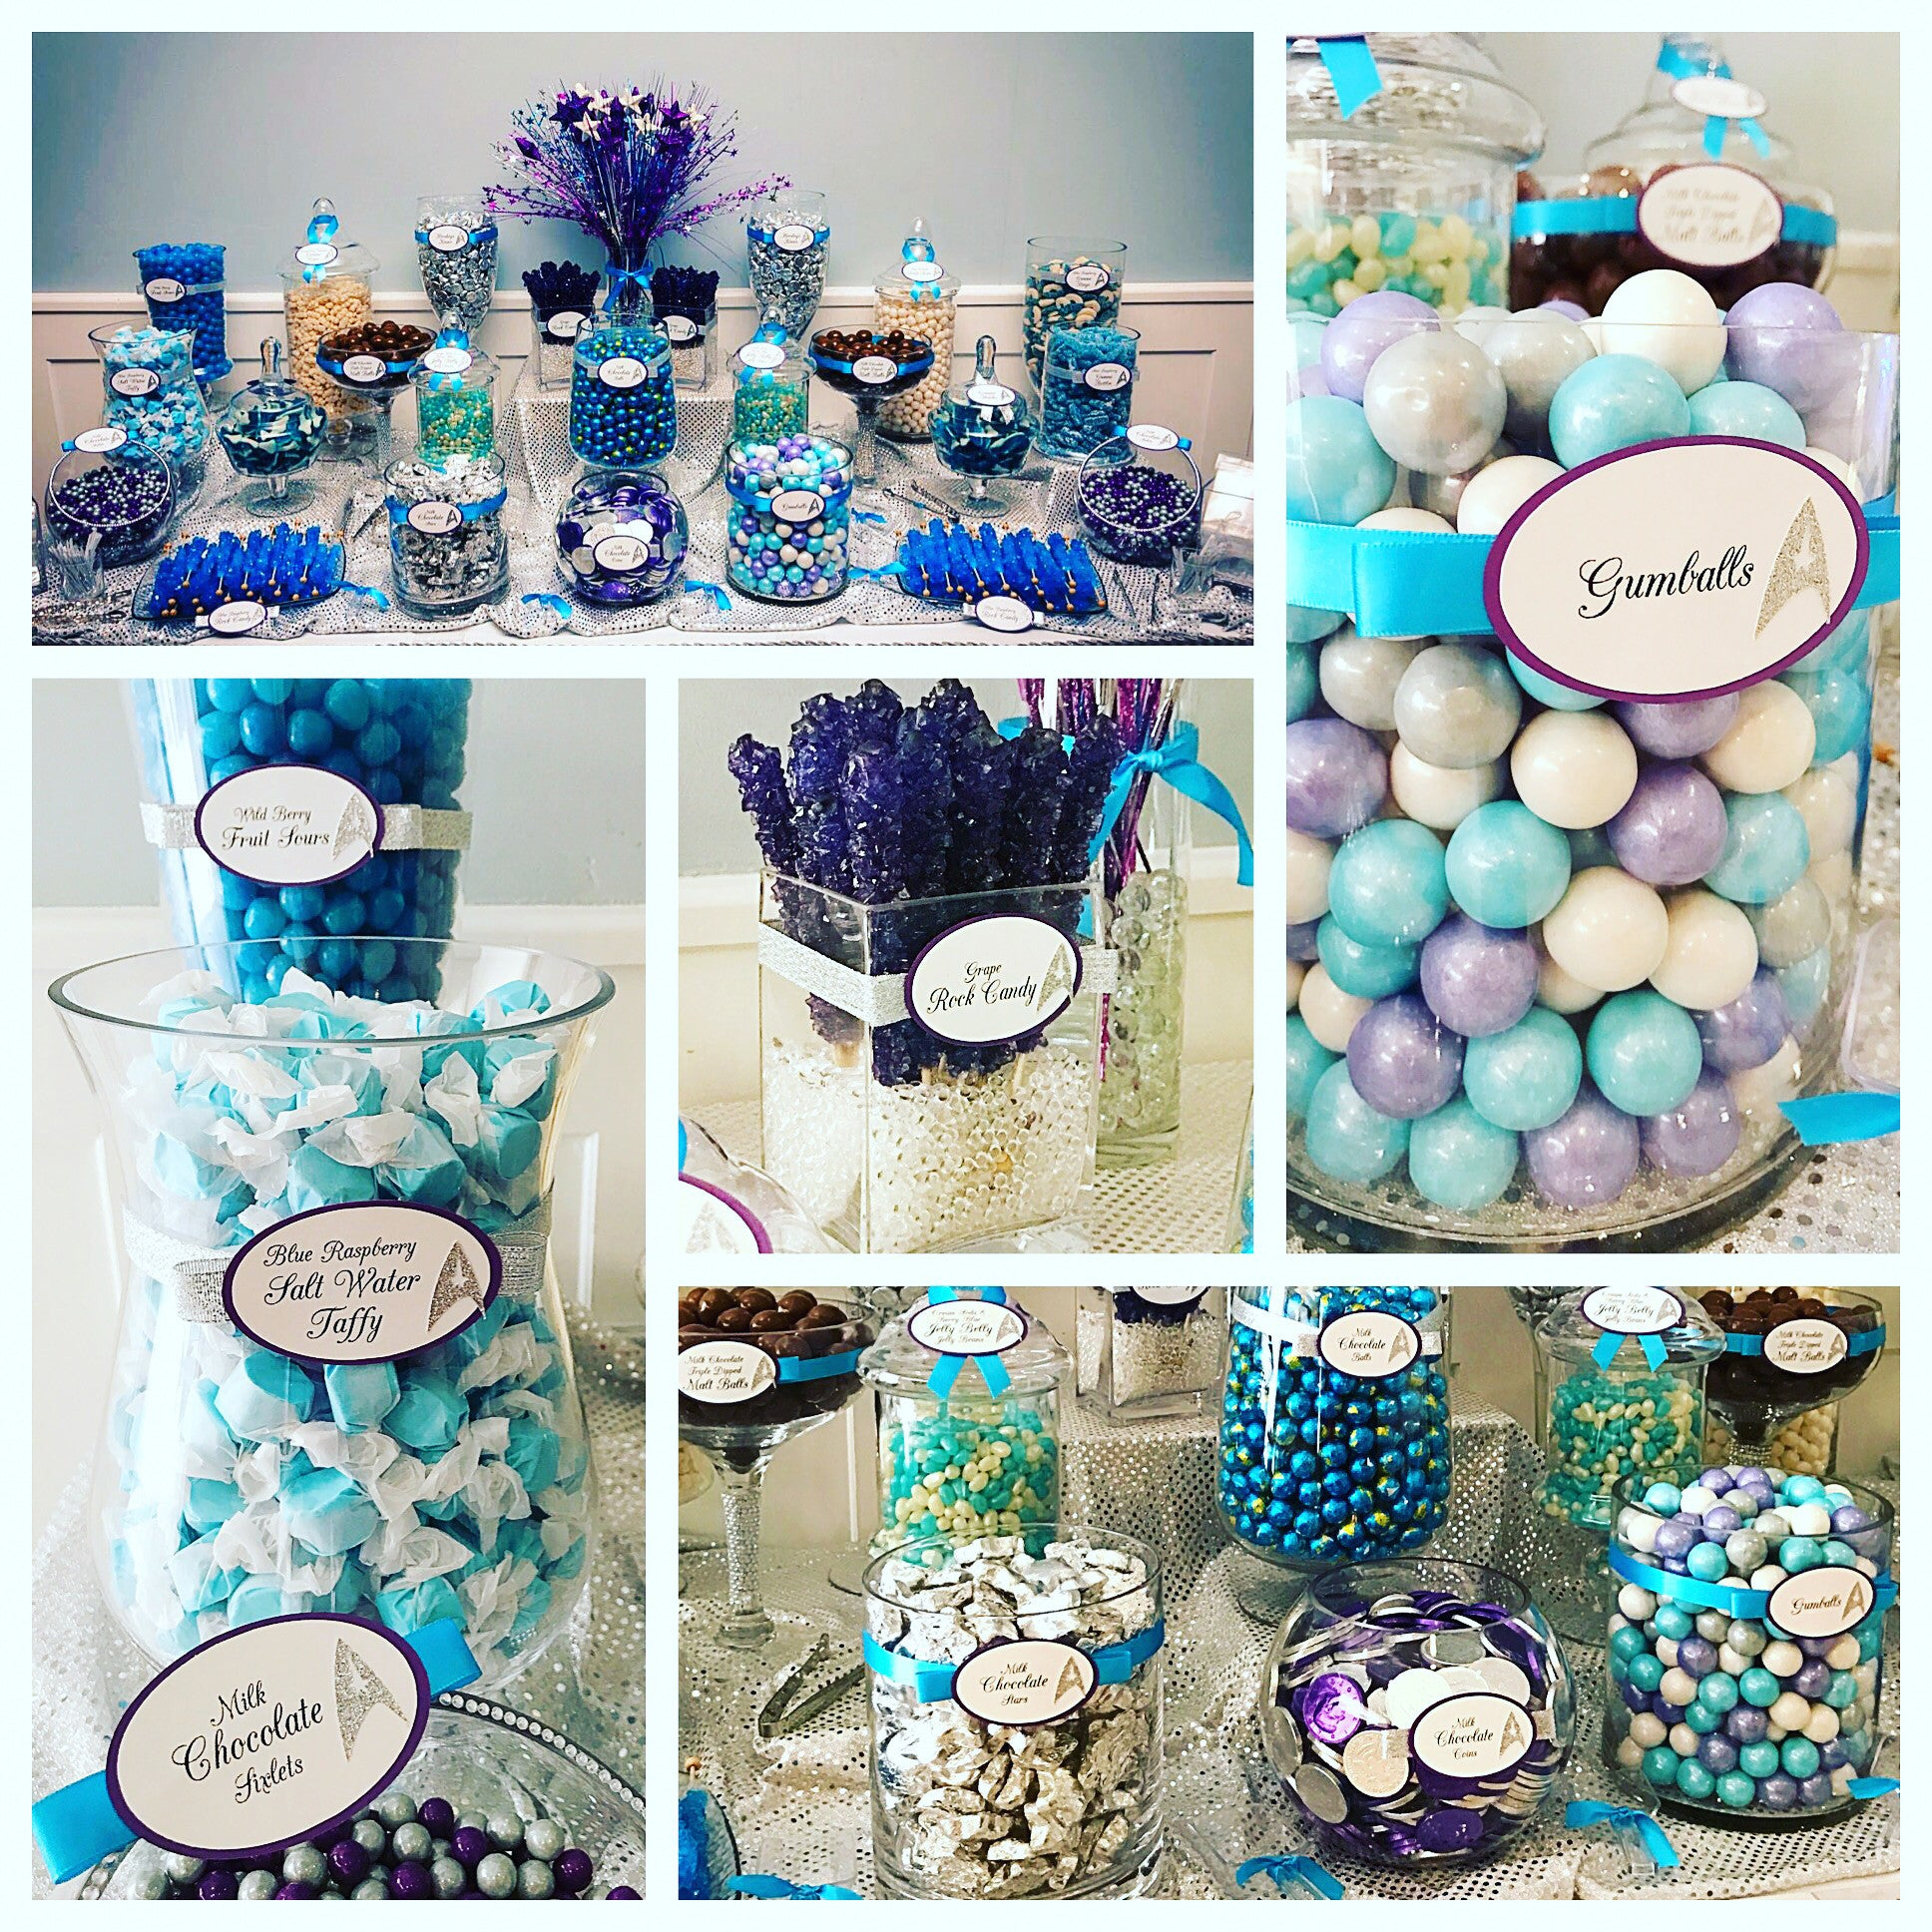 Groovy Candy Buffet Gallery Of Displays For Weddings Parties And Download Free Architecture Designs Embacsunscenecom